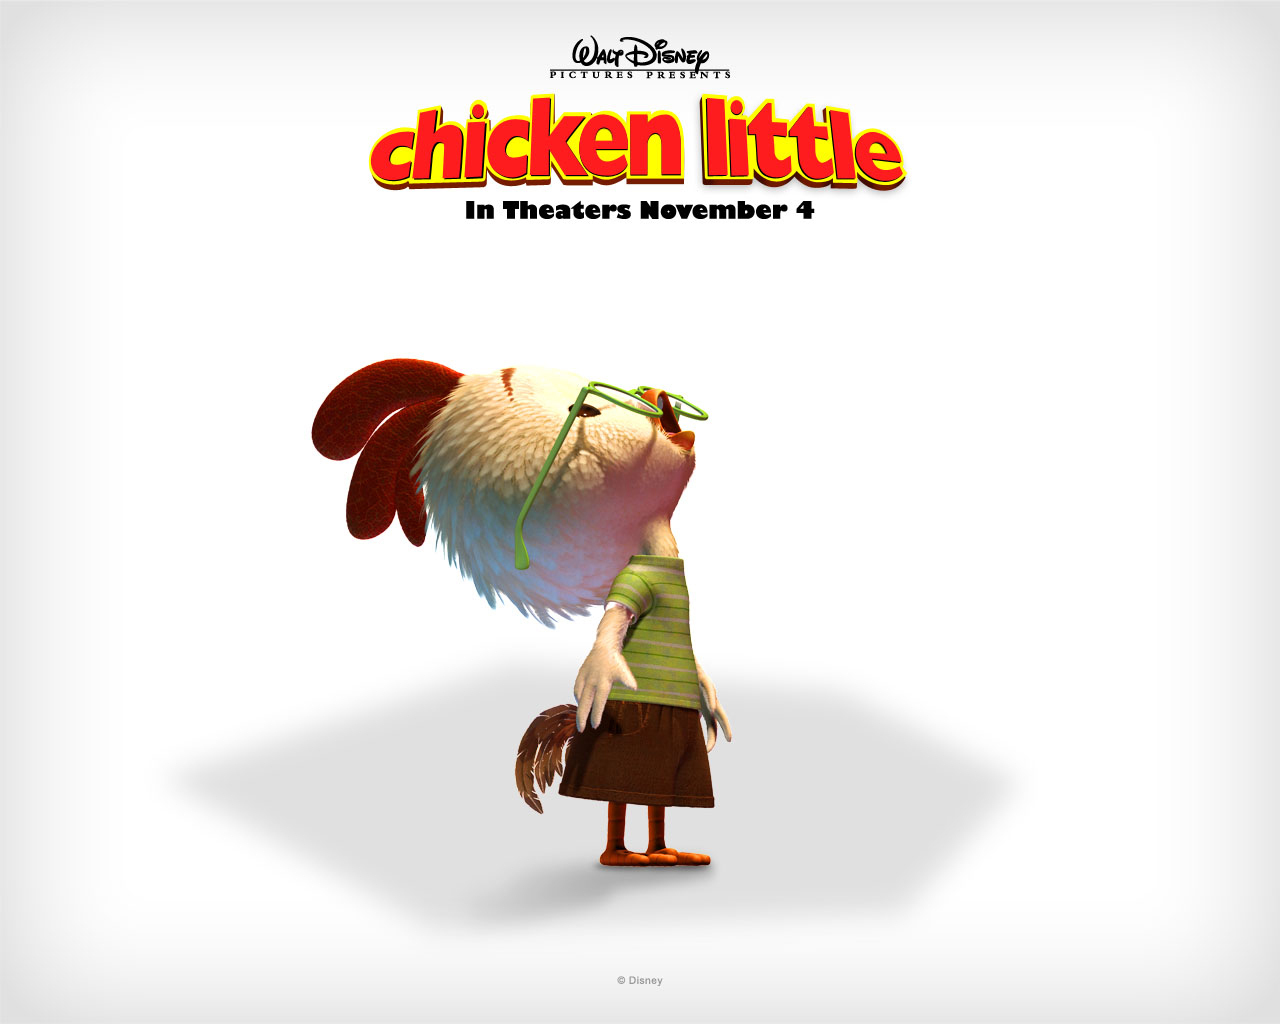 chicken little images chicken little wallpapers hd wallpaper and background photos 5541436. Black Bedroom Furniture Sets. Home Design Ideas